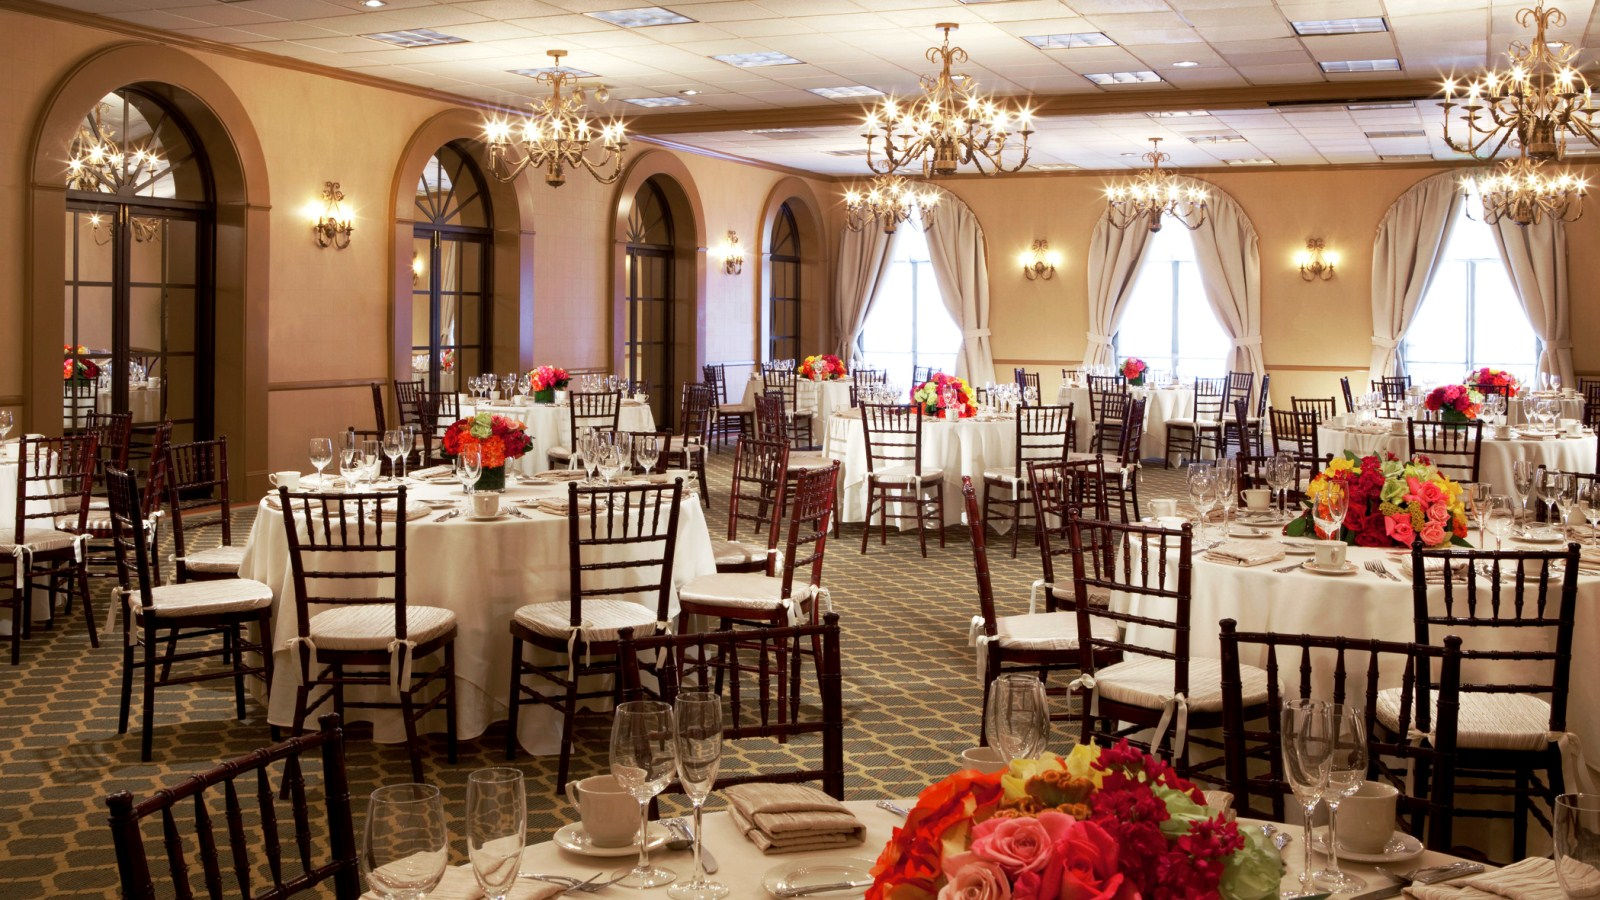 Pasadena Meeting Space - Ballroom